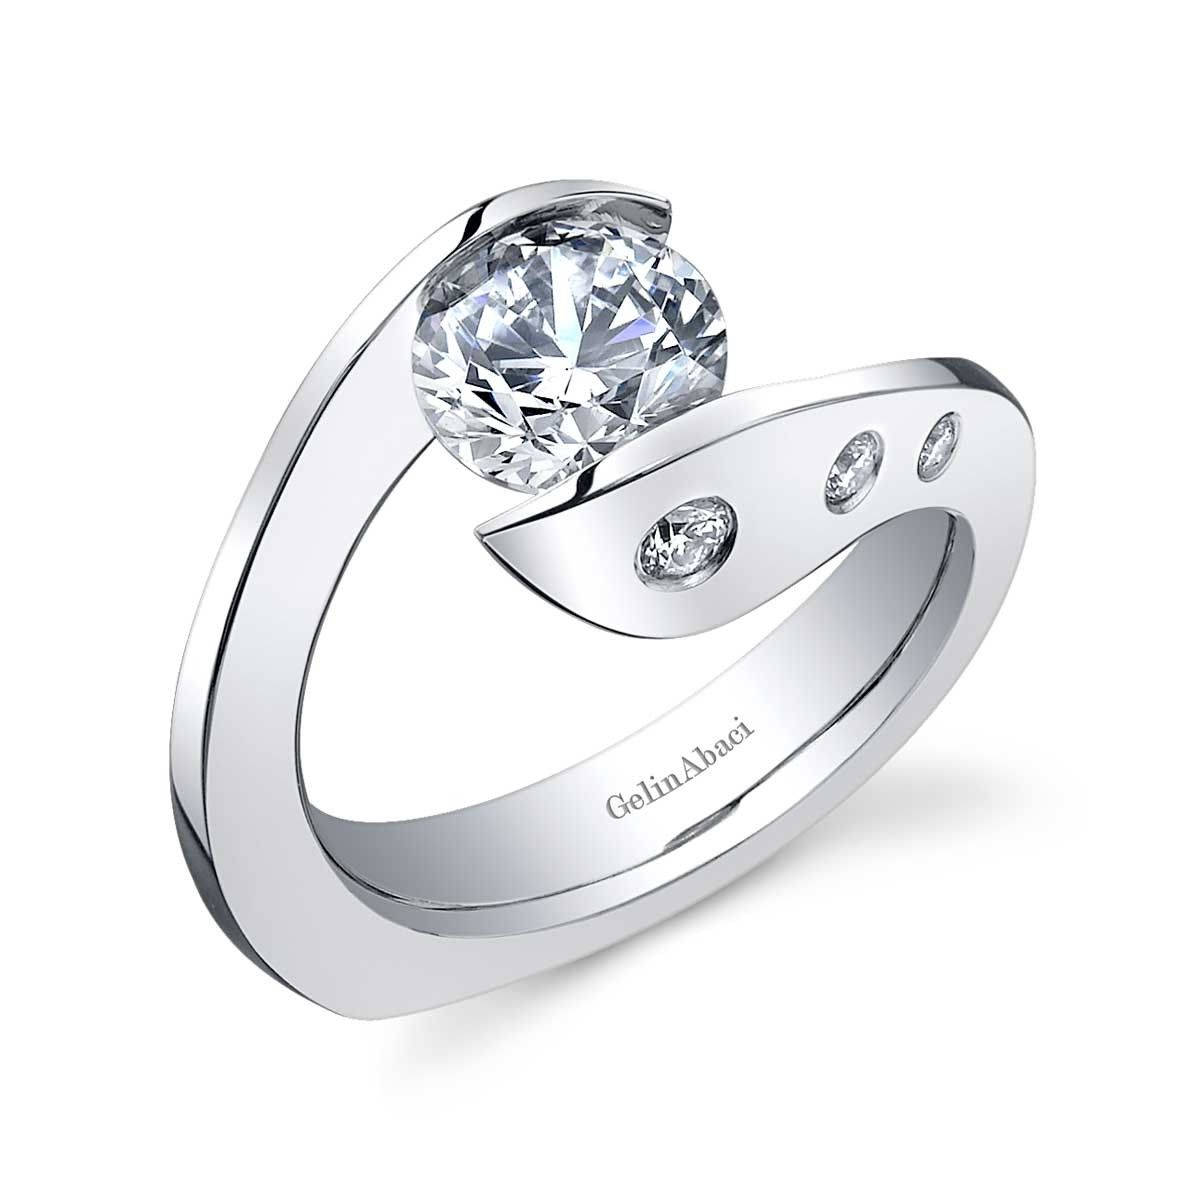 rings angle ring diamond jewellery wedding e zadok engagement goldman contemporary shop